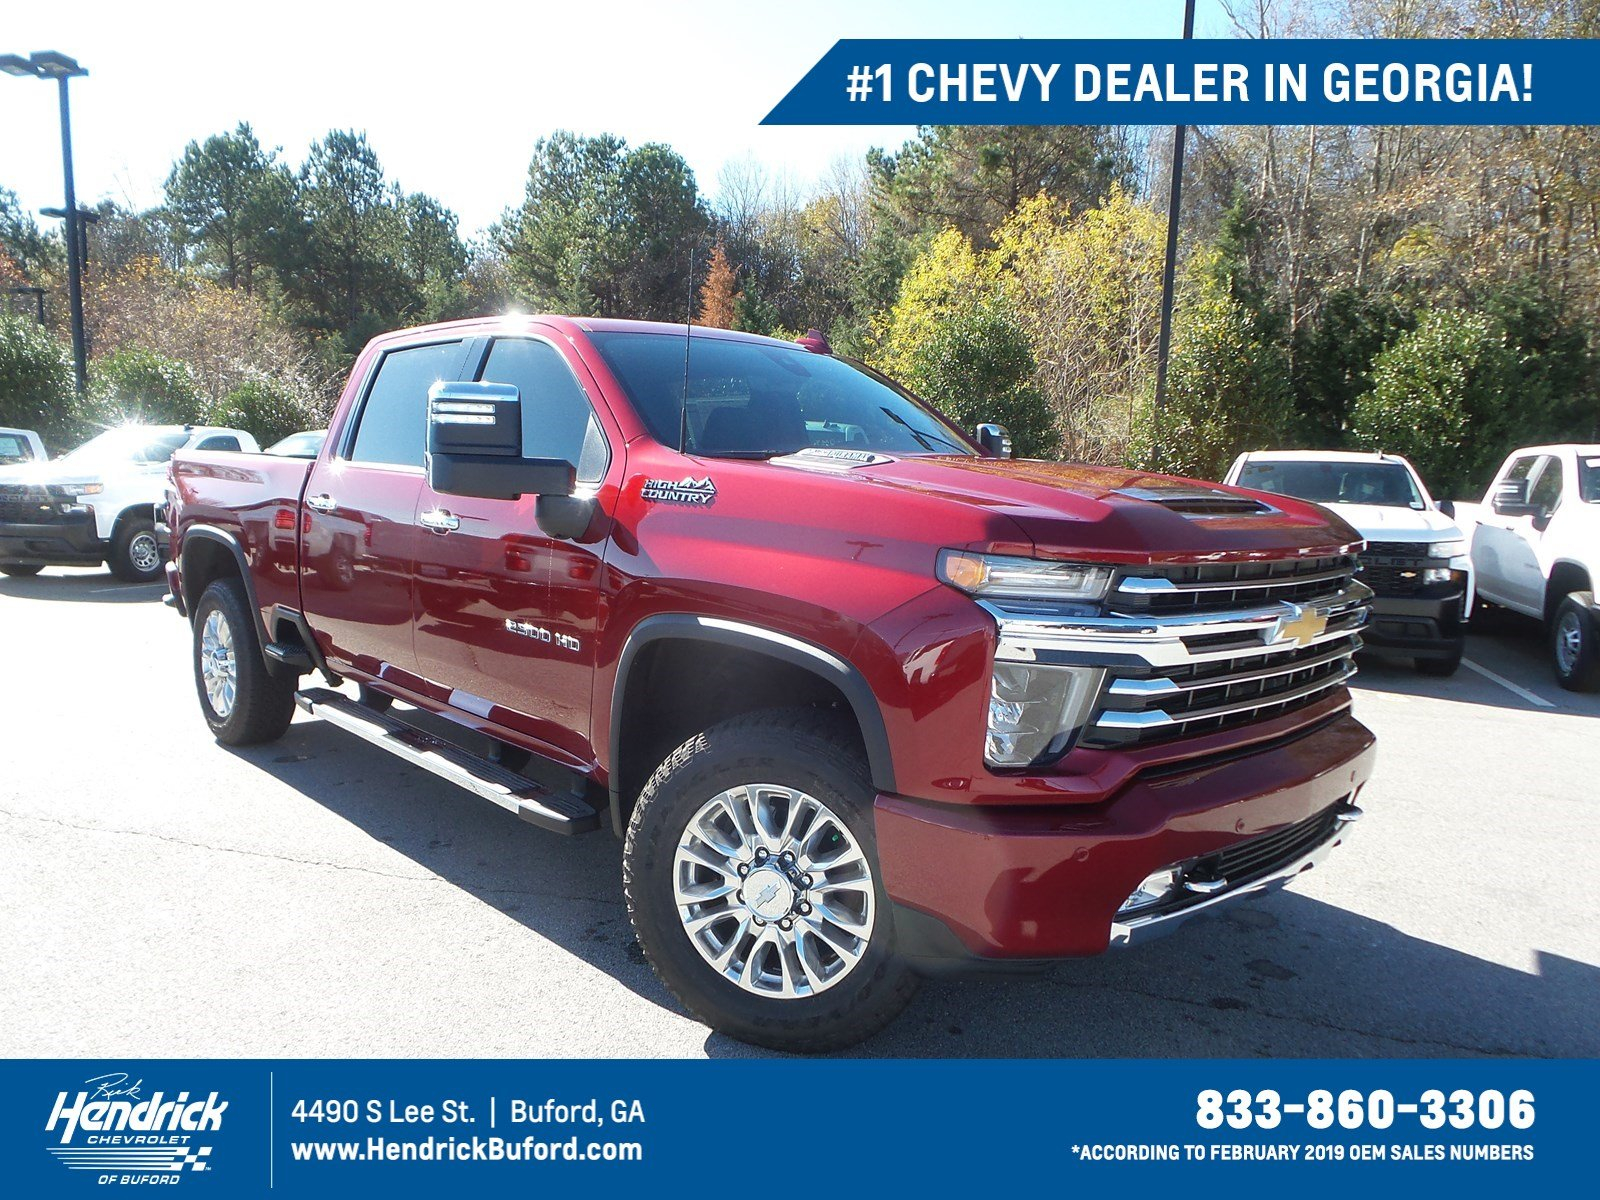 New 2020 Chevrolet Silverado 2500Hd High Country With Navigation & 4Wd 2021 Chevrolet Silverado 2500Hd Owners Manual, Oil, Pics